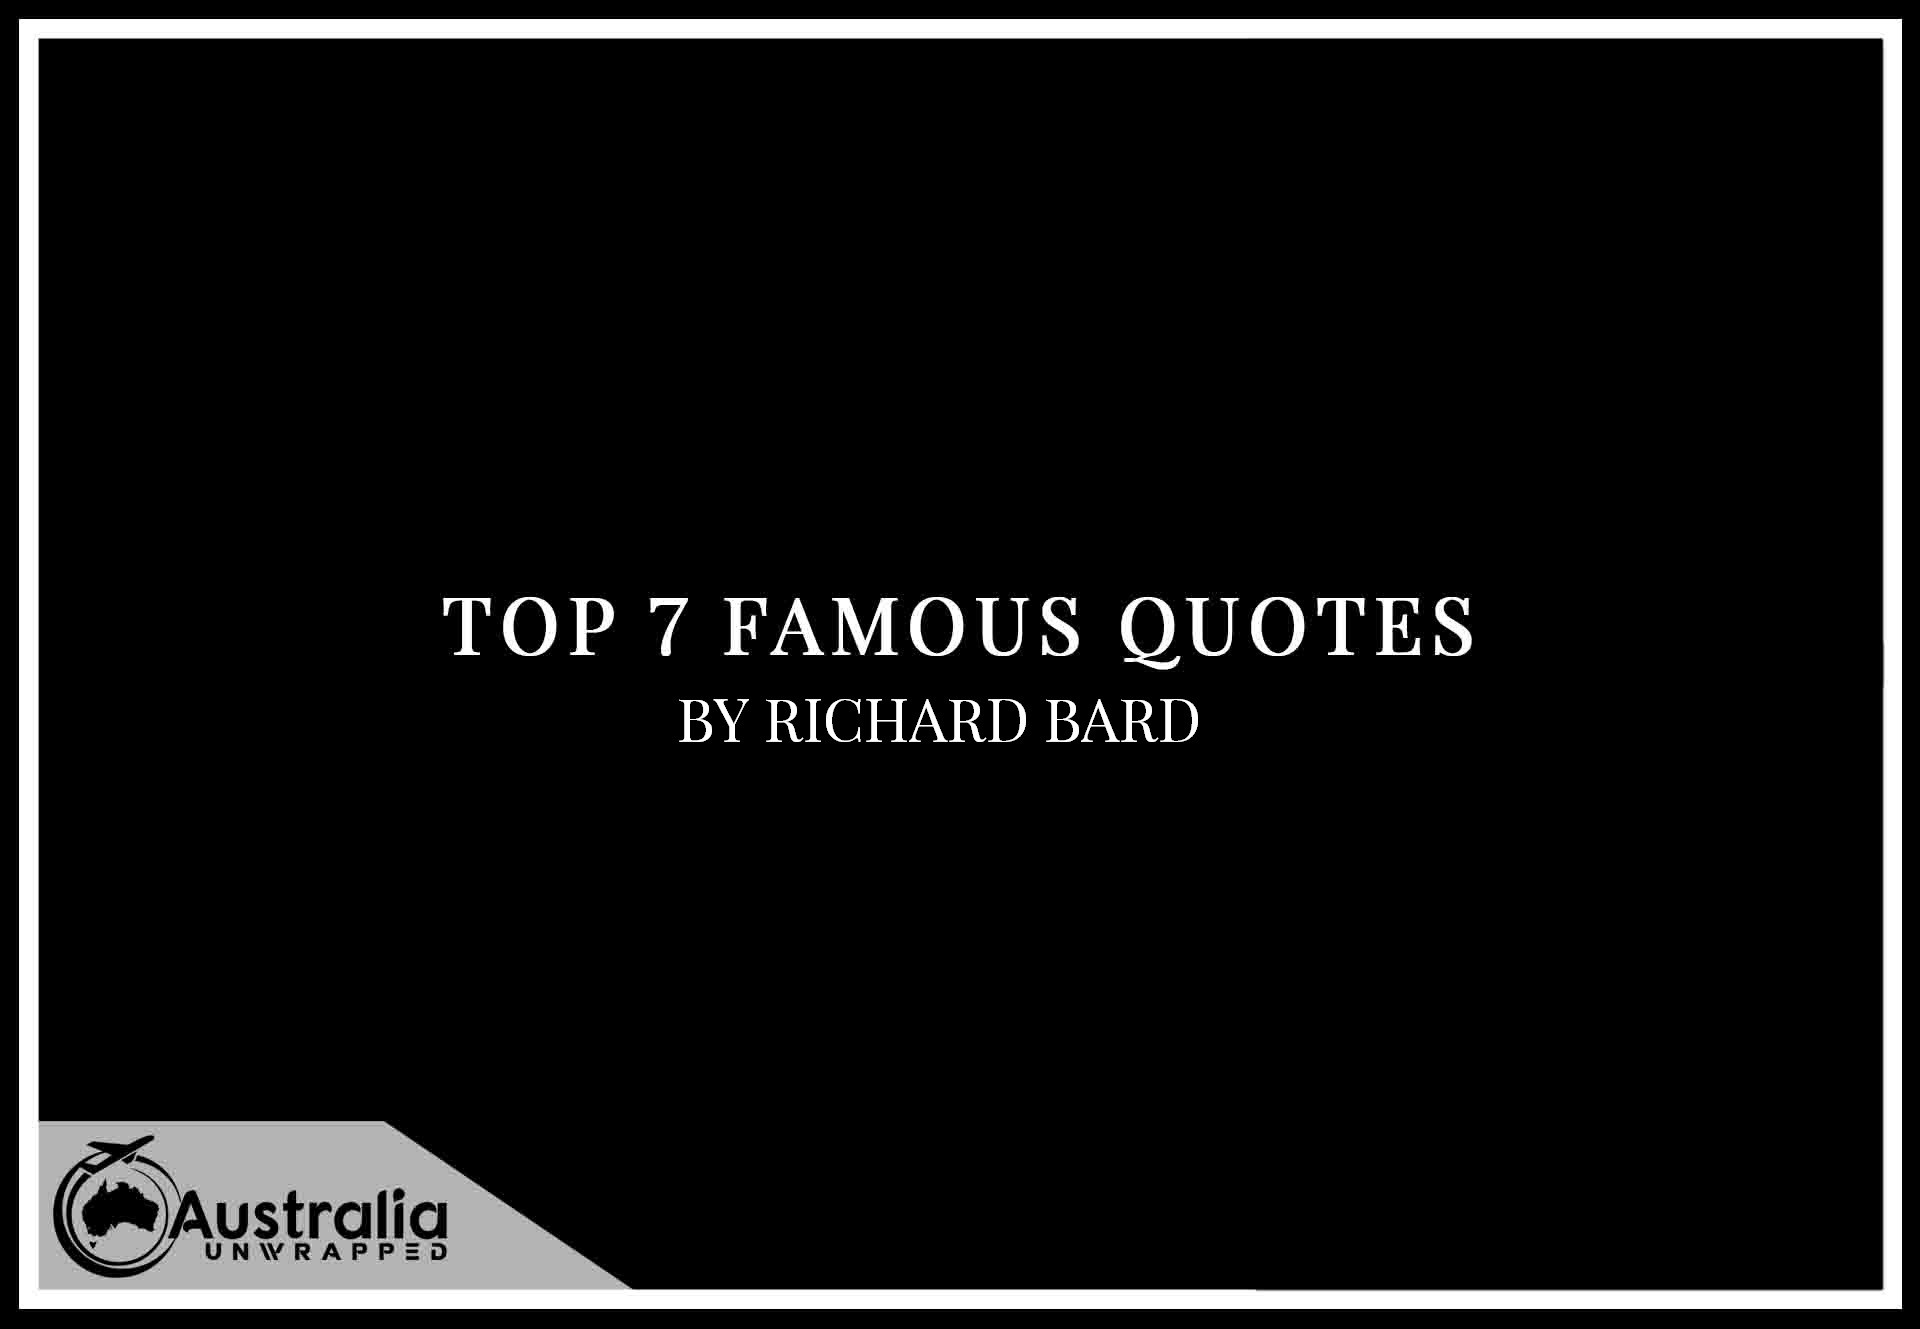 Top 7 Famous Quotes by Author Richard Bard